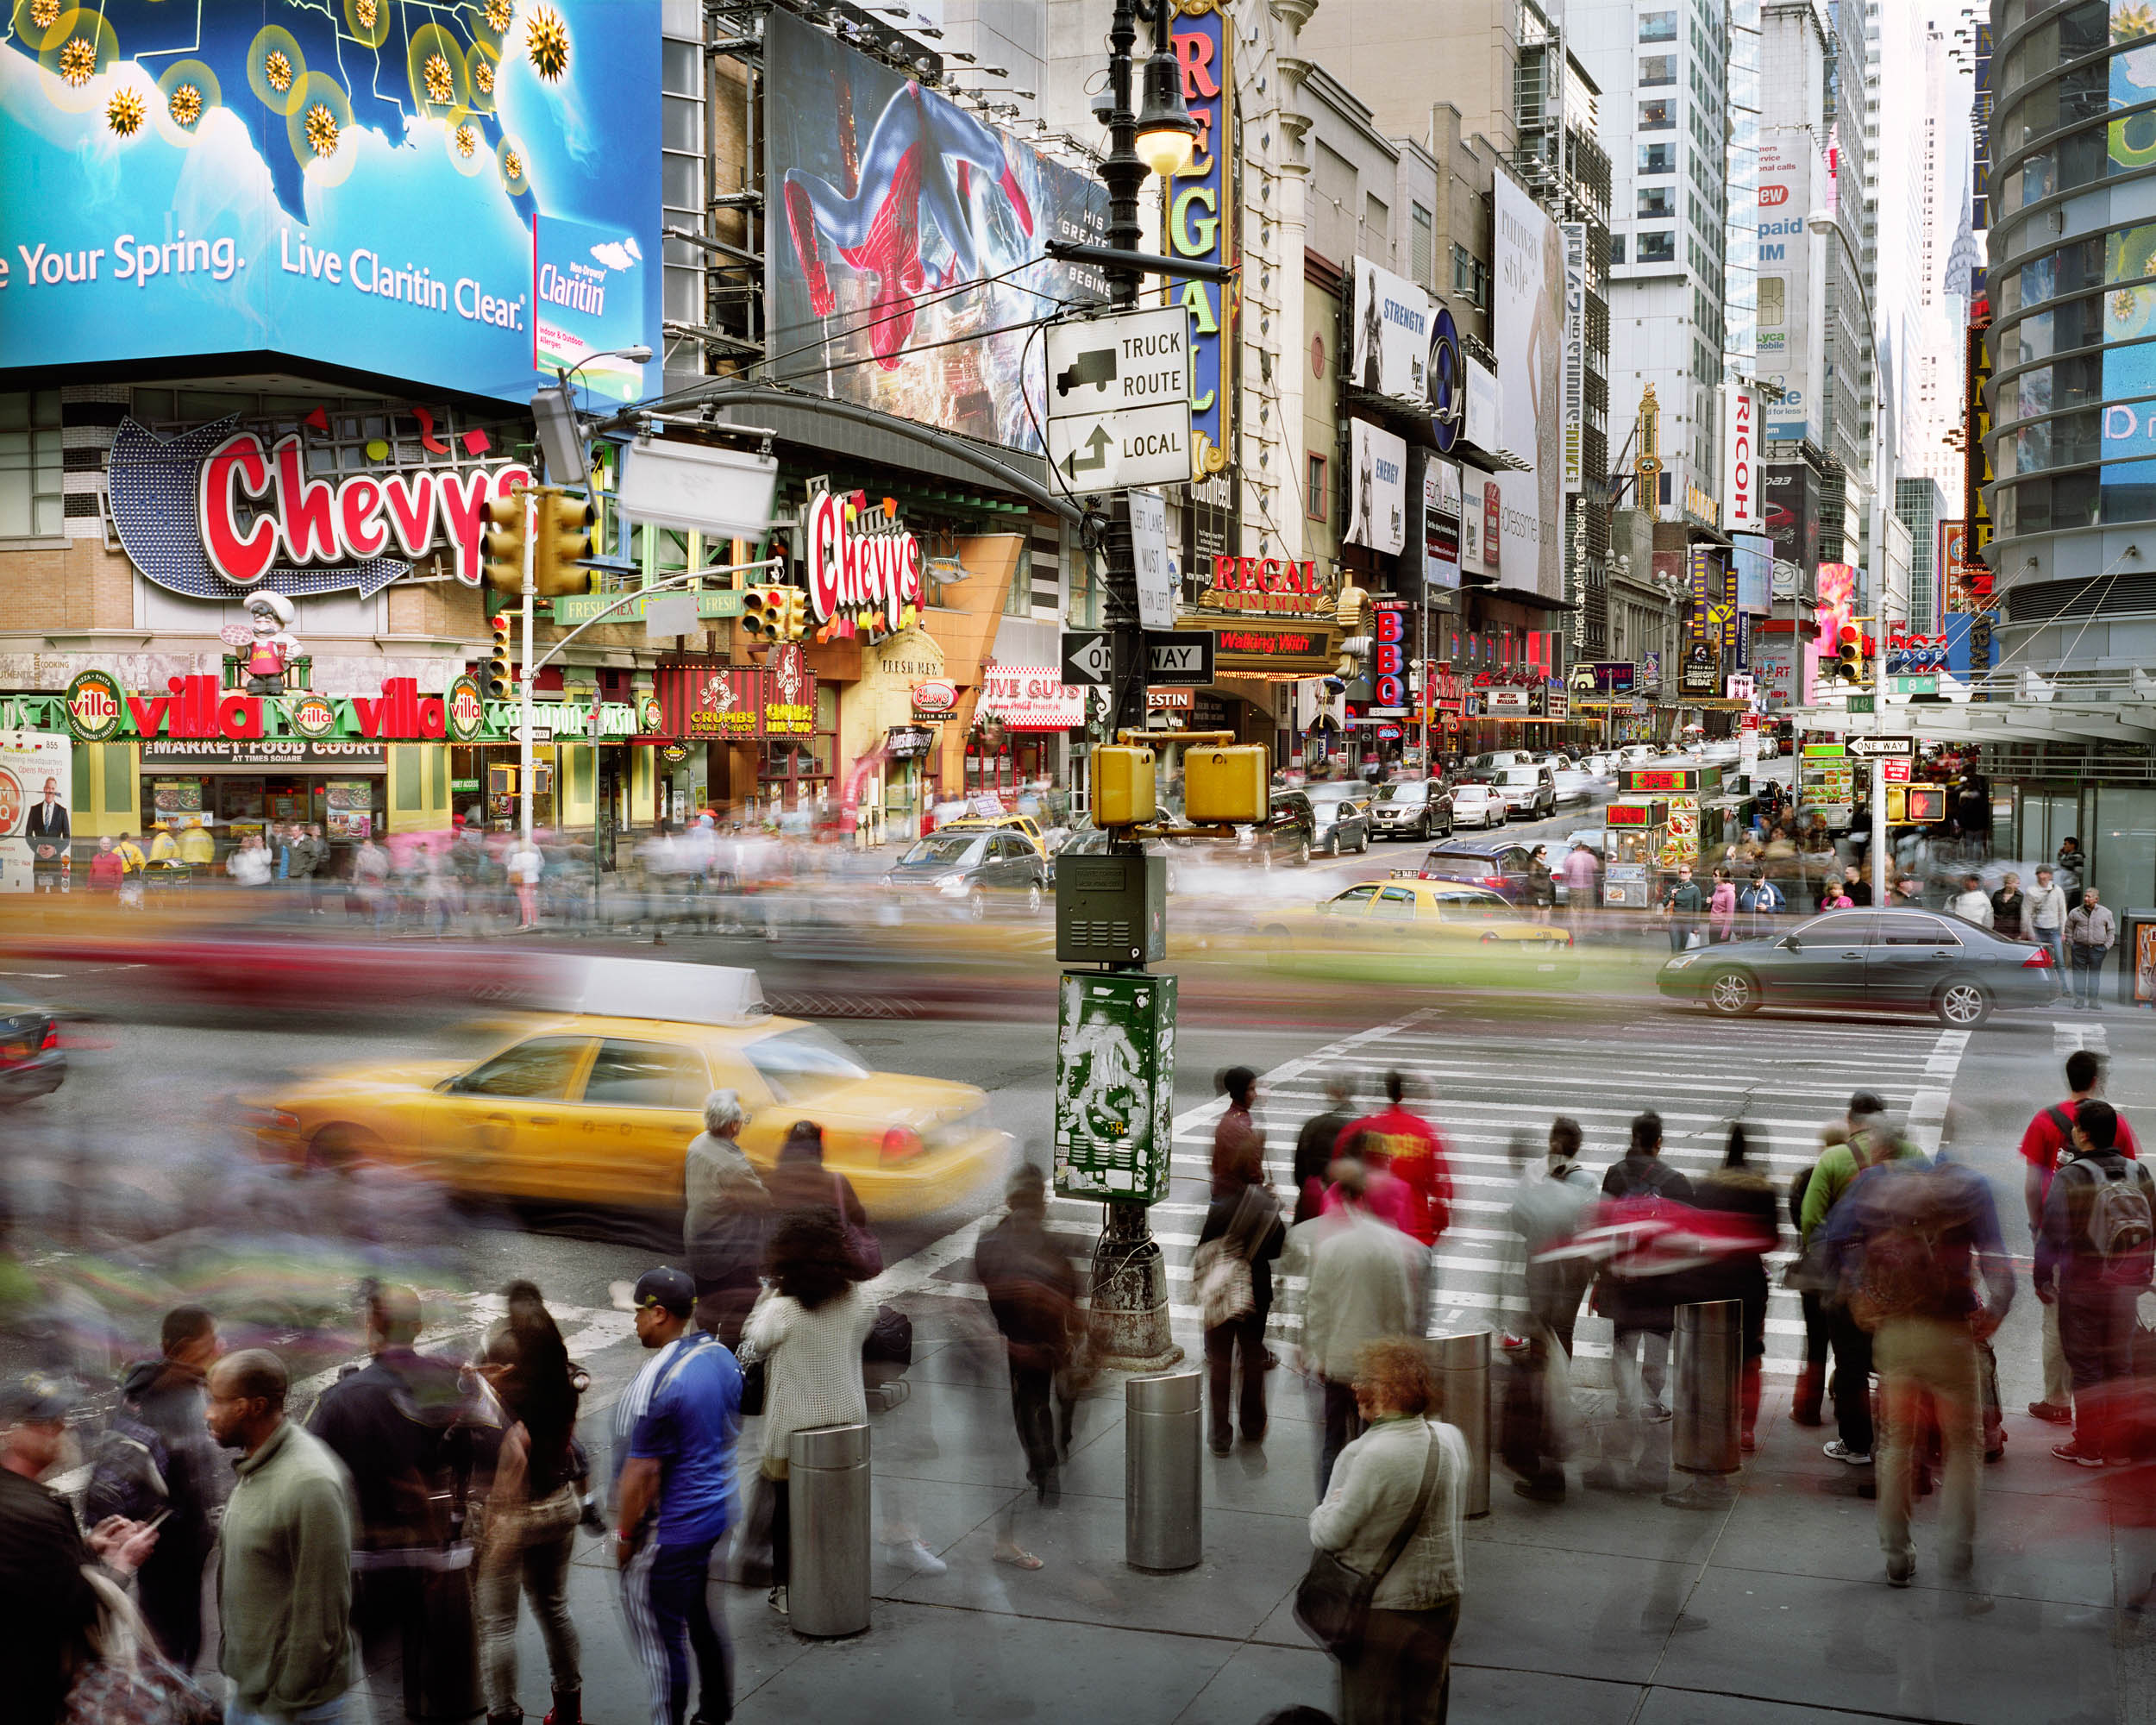 West 42nd Street and 8th Avenue, Manhattan, New York, USA